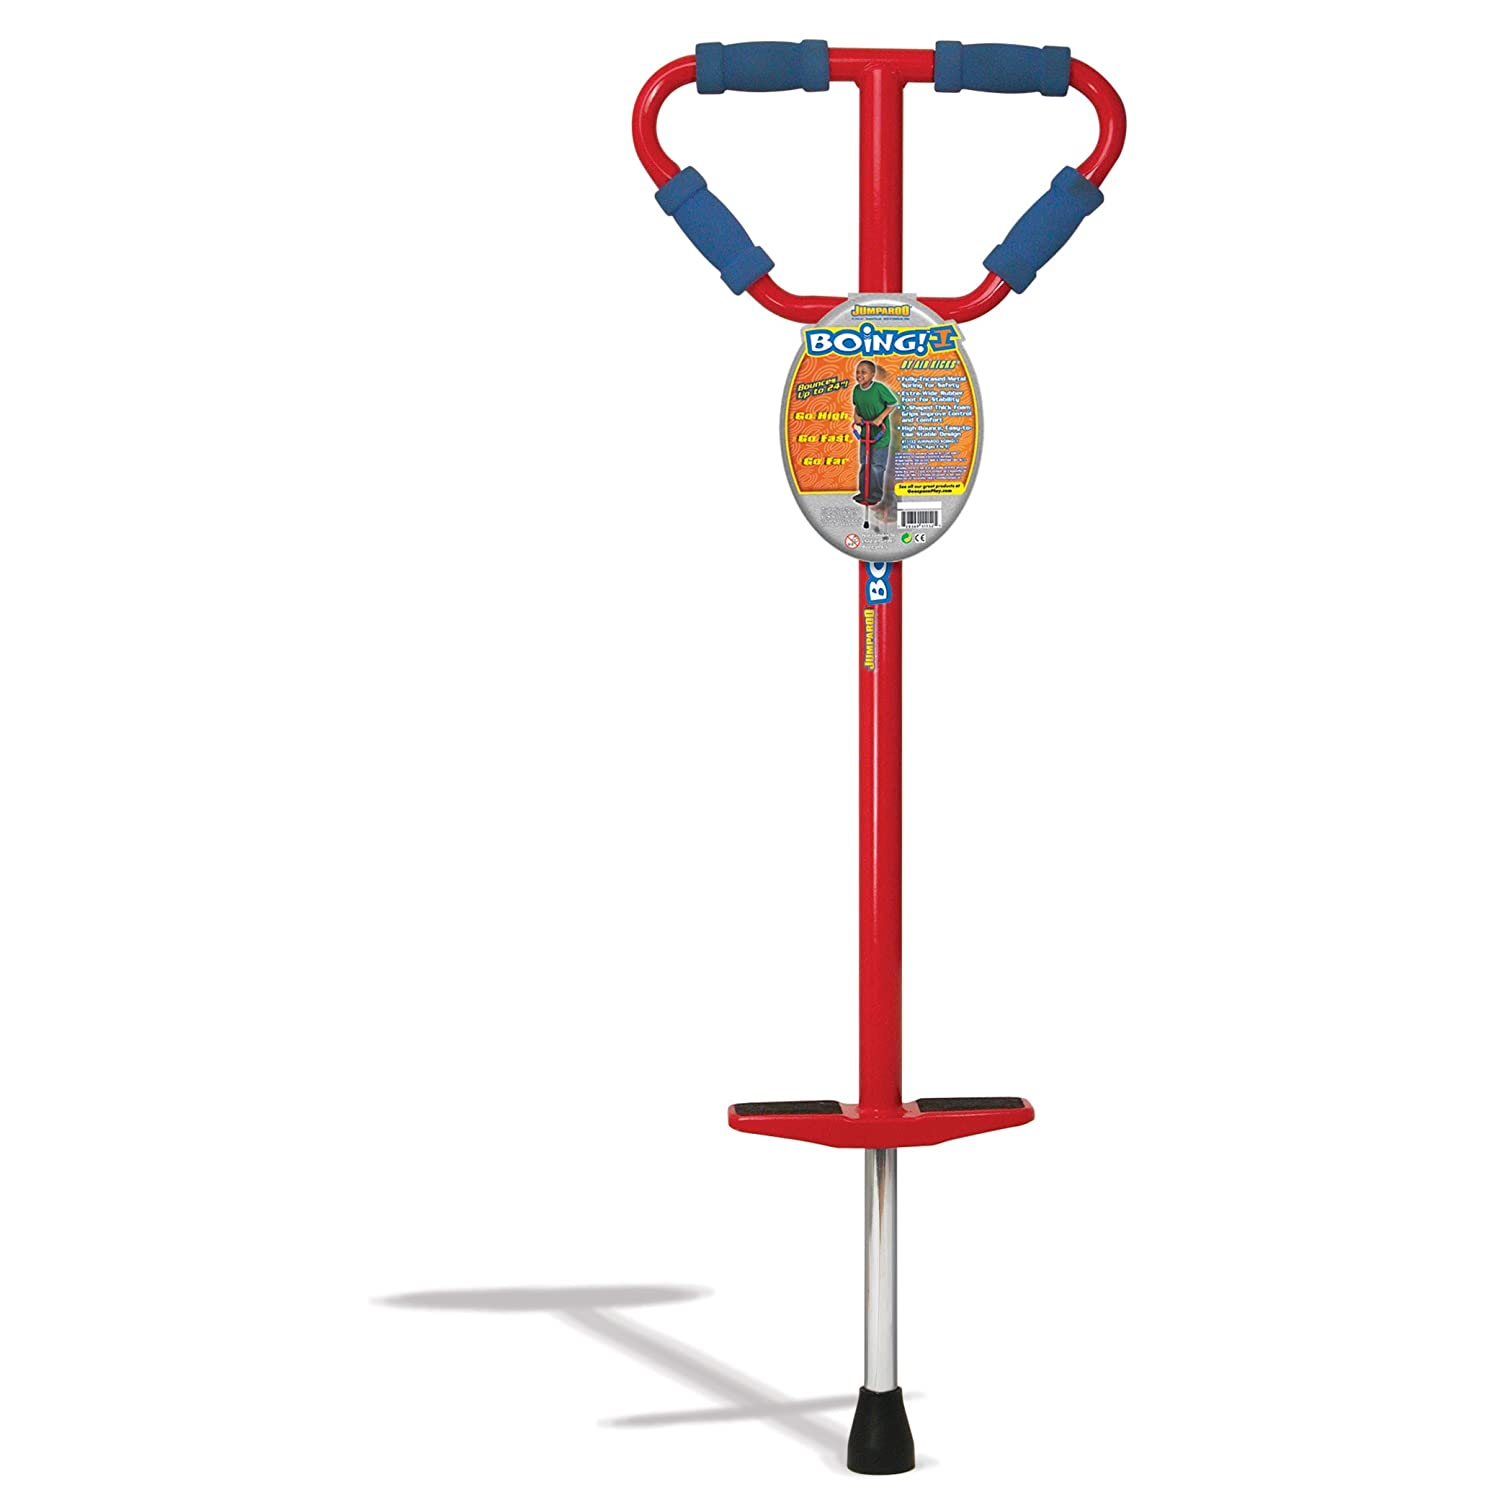 Medium Jumparoo Boing! I Pogo Stick by Air Kicks for Kids 44 to 86 Lbs.